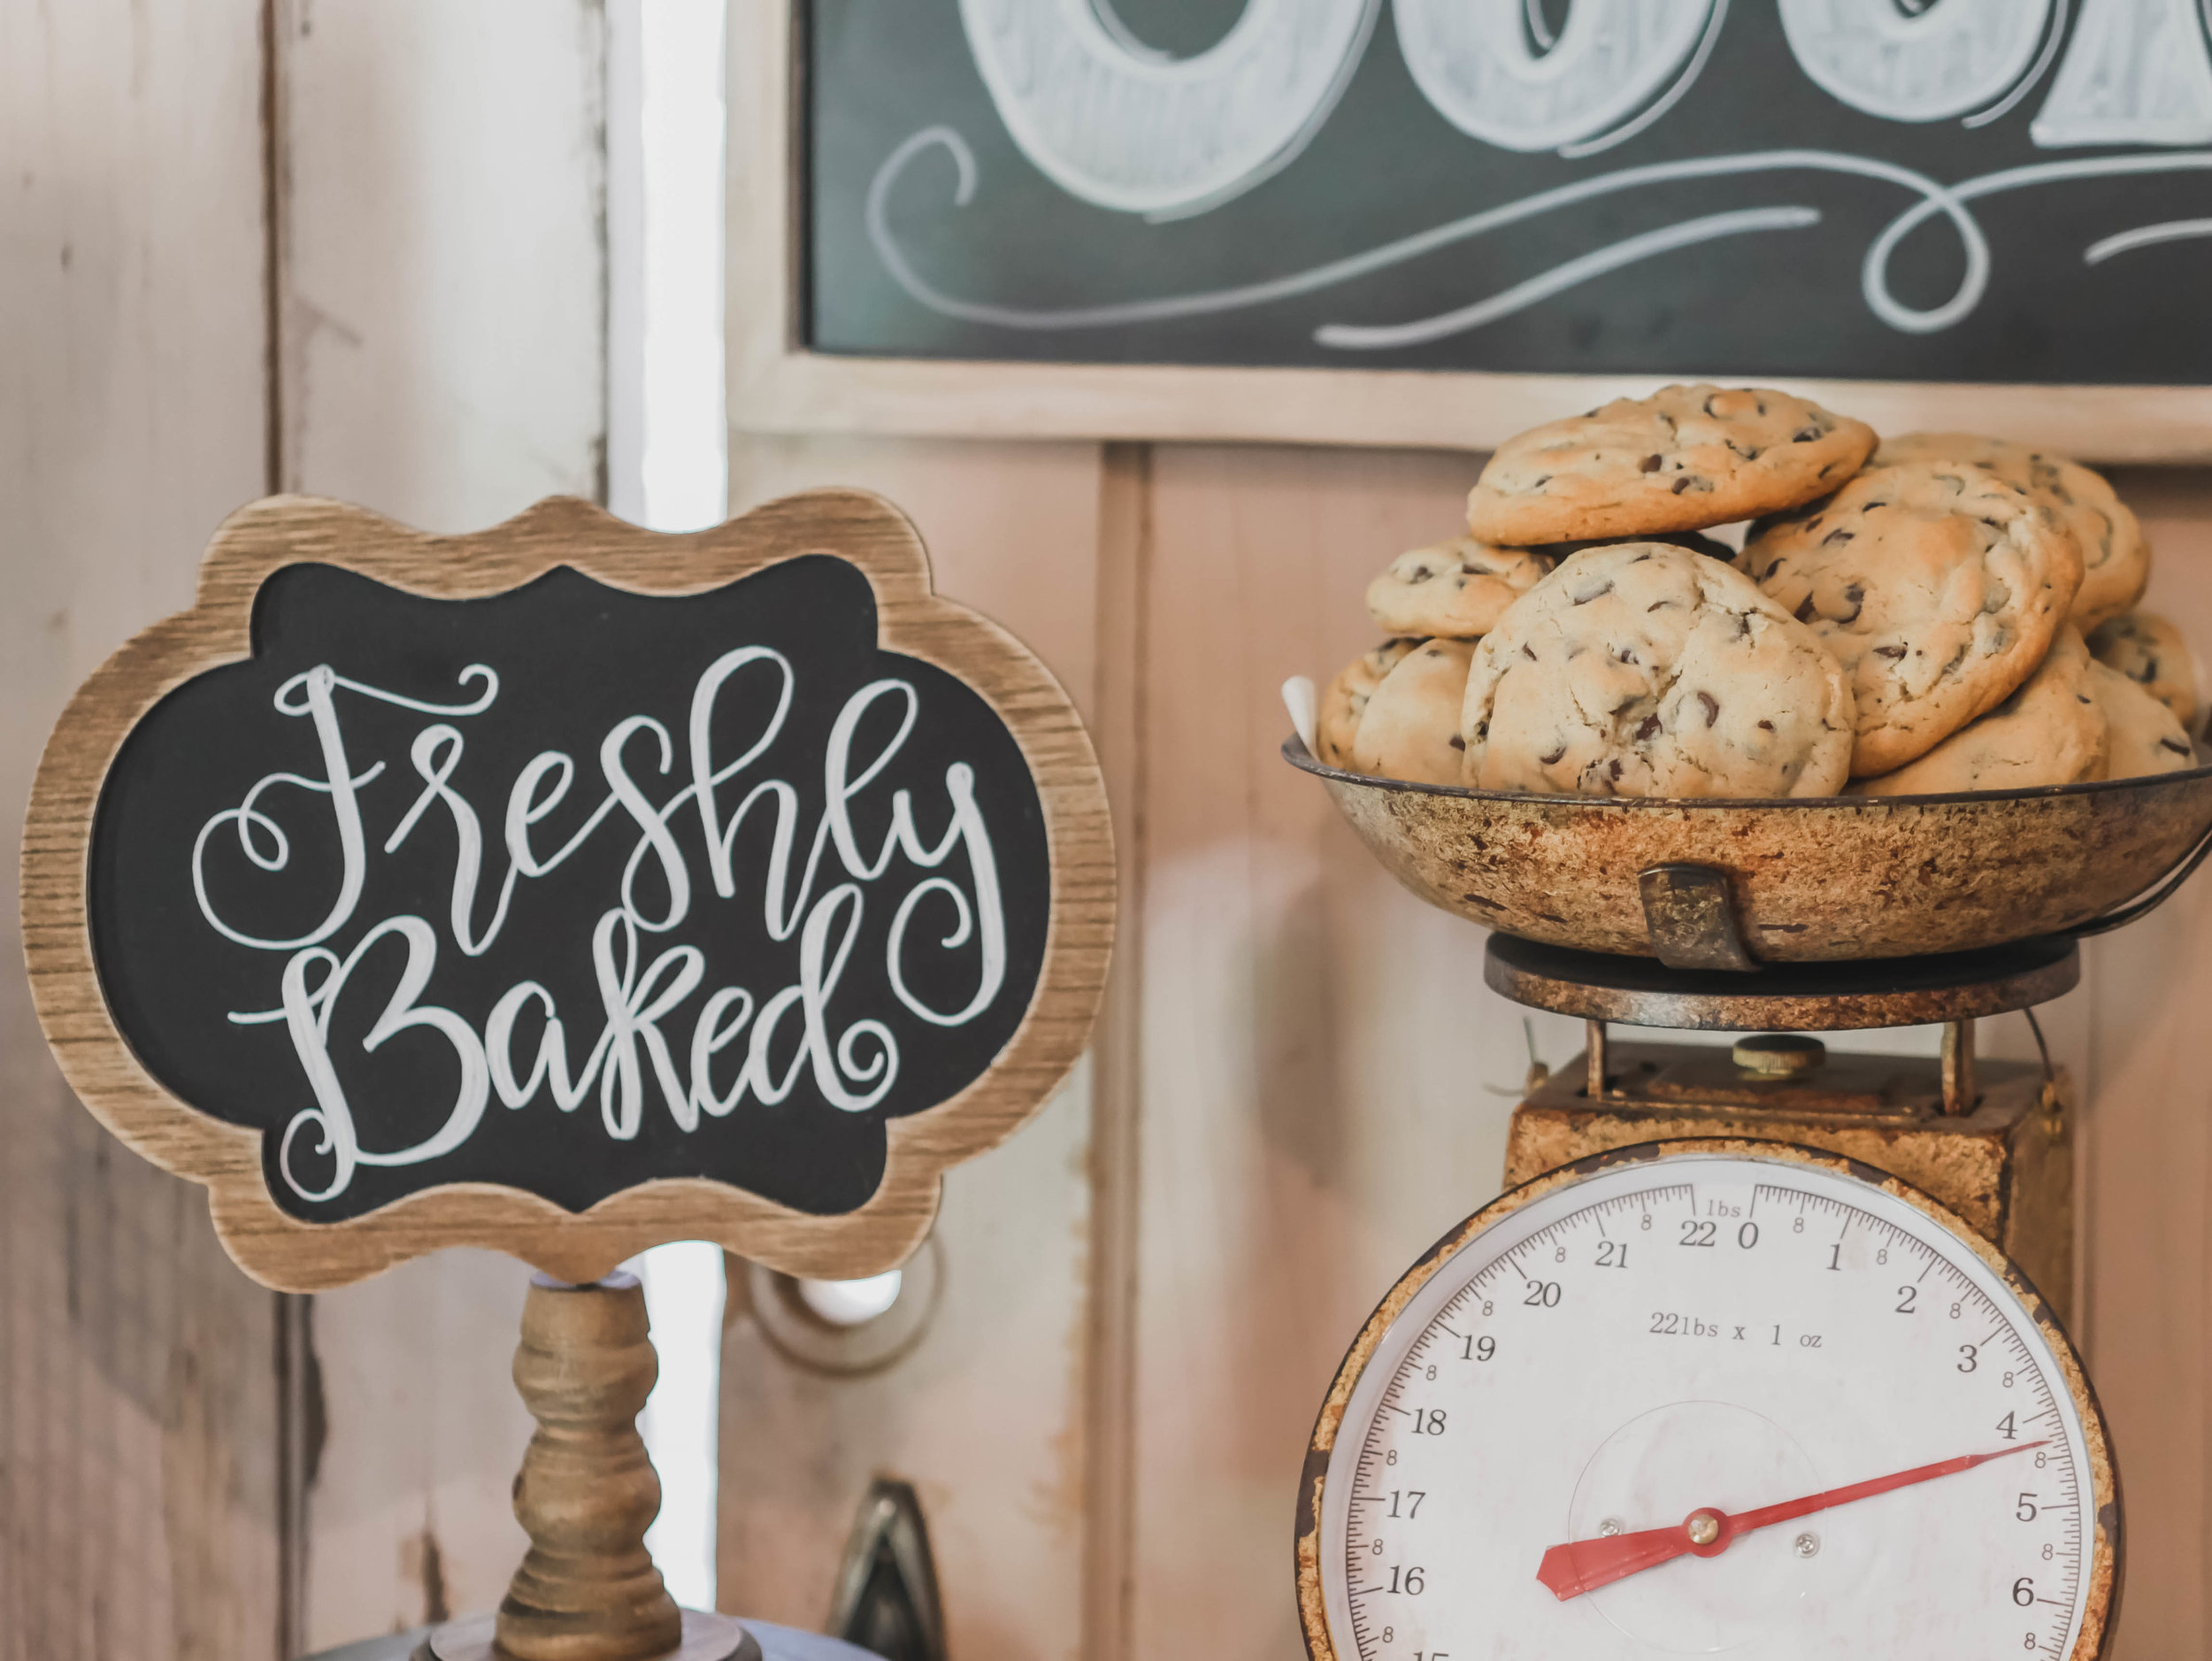 Freshly Baked Hand lettered chalkboard sign at a One Smart Cookie Graduation Party - as seen on Mint Event Design www.minteventdesign.com Rustic serving platters and galvanized metal create the perfect farmhouse feel at this One Smart Cookie Graduation party by Mint Event Design - party planner in Austin Texas www.minteventdesign.com #graduationparty #graduationpartyideas #partyideas #rusticpartyideas #partyinspiration #dessertbar #desserttable #chalkboardsigns